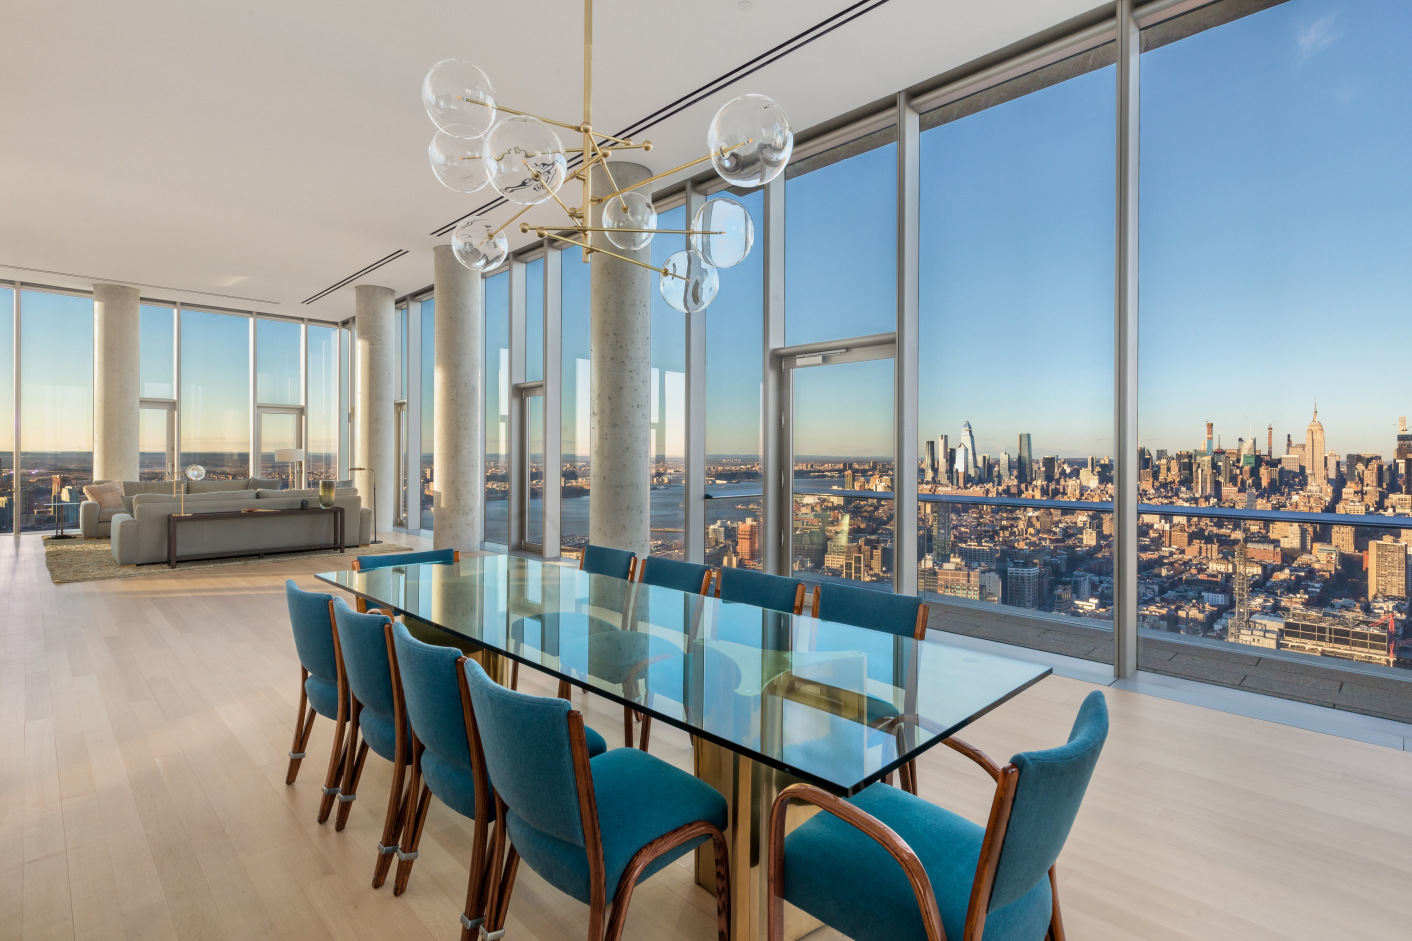 INTRODUCING THE LARGEST PENTHOUSE IN 56 LEONARDTowering over downtown Manhattan, this penthouse in the sky is perched atop the iconic 56 Leonard Street, a pillar of historic Tribeca. The home's 360 degree views of Manhattan are unrivaled and indescribable. Spanning 6,400 square feet of space and three private terraces, this distinctive residence is the largest floor plate in the building.Through a private key-locked elevator, enter the 53rd floor where you are welcomed by soaring 14-foot ceilings and walls of windows. This glass enclosed chateau reveals a backdrop of Manhattan stretching north, east, west, and south. The lavish great room is flanked by a wood-burning fireplace and west-facing terrace with sweeping water views.Wrapping around to the right of the great room is a formal dining area with breathtaking northern views all the way up to the Empire State Building. Continuing past the dining area is an enormous chef's kitchen, uniquely crafted by Herzog & de Meuron featuring an Absolute Black granite grand piano-shaped island and custom-sculpted fully-vented range hood. Satin-glass etched cabinetry surrounds a modern selection of premium Miele and Sub-Zero appliances. Off the kitchen and dining areas is an unprecedented 1,000+ square foot wraparound terrace where one can throw extravagant parties and ogle the staggering views north and east across the city.Sunlight bounces off the Appalachian white oak flooring throughout the home, illuminating all four bedrooms and showcasing a superb, unparalleled design. The master suite revels in the beauty of the city below, with triple exposures north, east, and south offering jaw-dropping views of the East River and One World Trade Center. The expansive 17 x 36 bedroom features a seating area, three large walk-in closets, an en-suite bath, and access to the wraparound terrace. The five-piece master bath is appointed with travertine floors and Thassos marble mosaic tile walls. The Herzog & de Meuron custom design includ